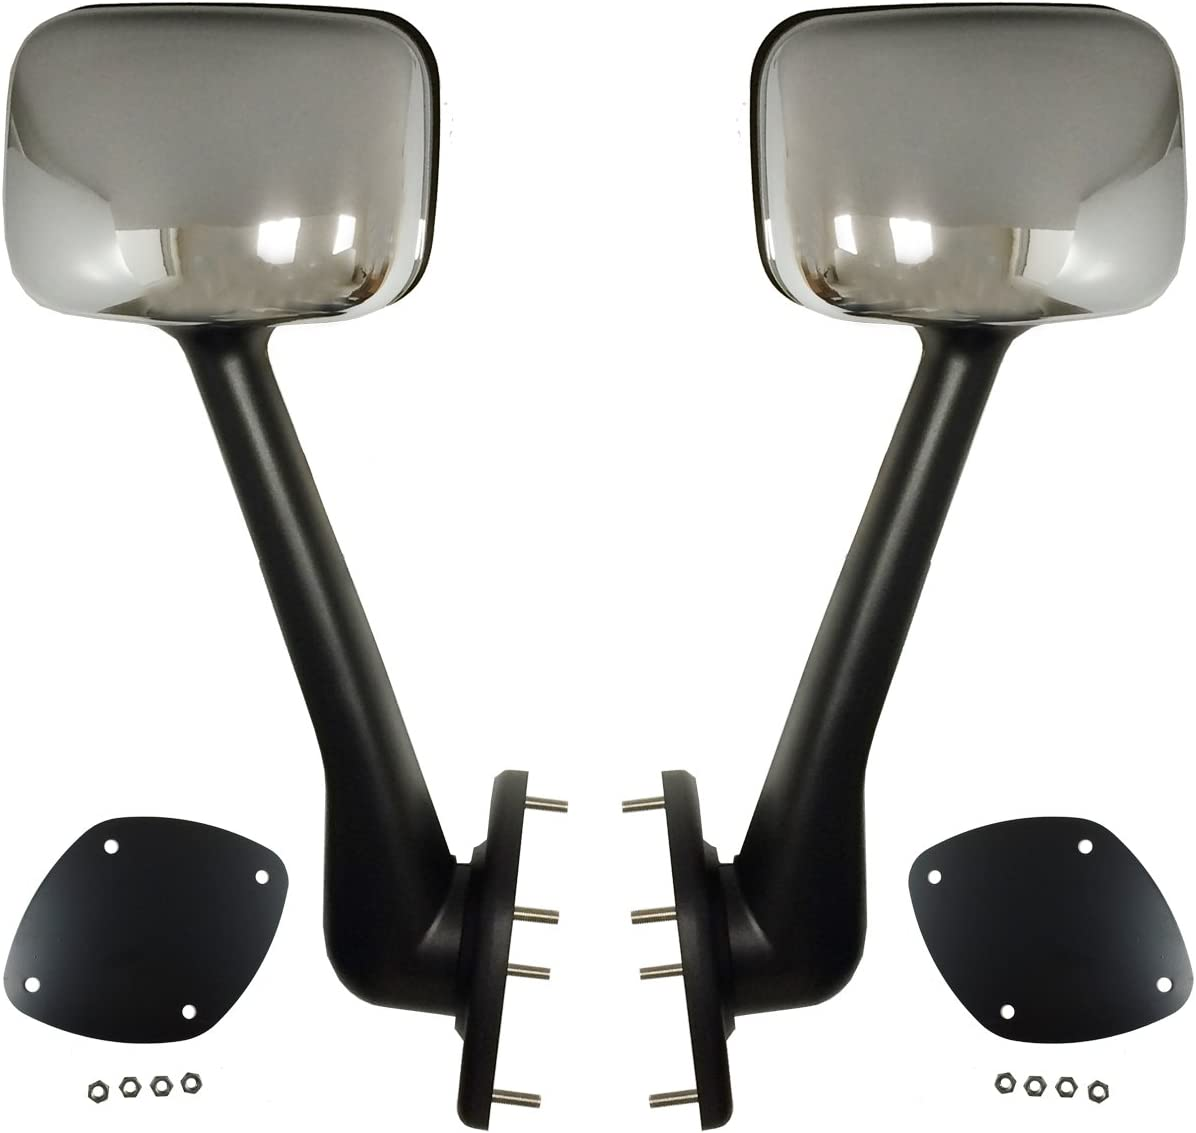 Driver /& Passenger Side with Mounting Kits 2 Pack PETAPARTS PBP 35-090-S Freightliner Cascadia Hood Mirror Chrome